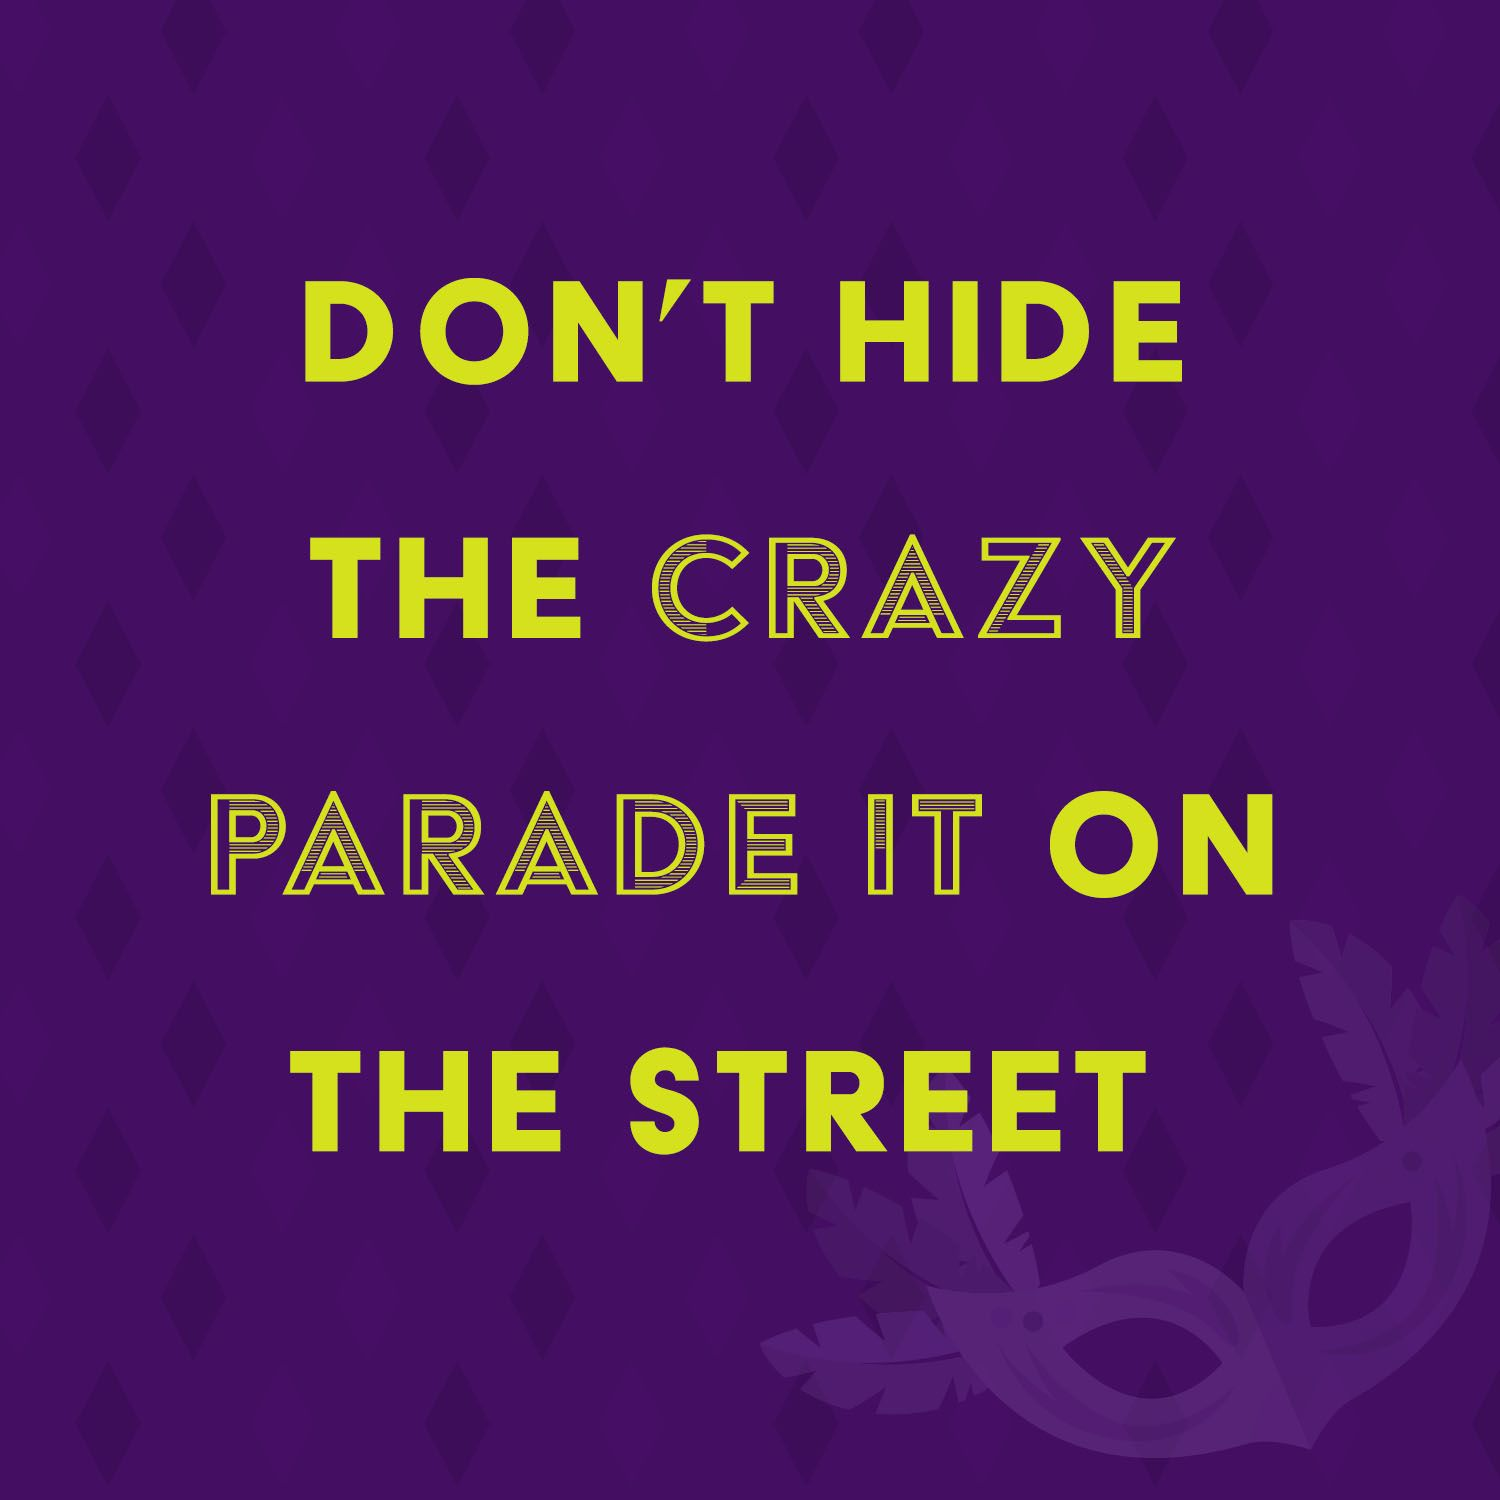 Funny Motivational Quotes Funny Motivational Quotedon't Hide The Crazy Parade It On The